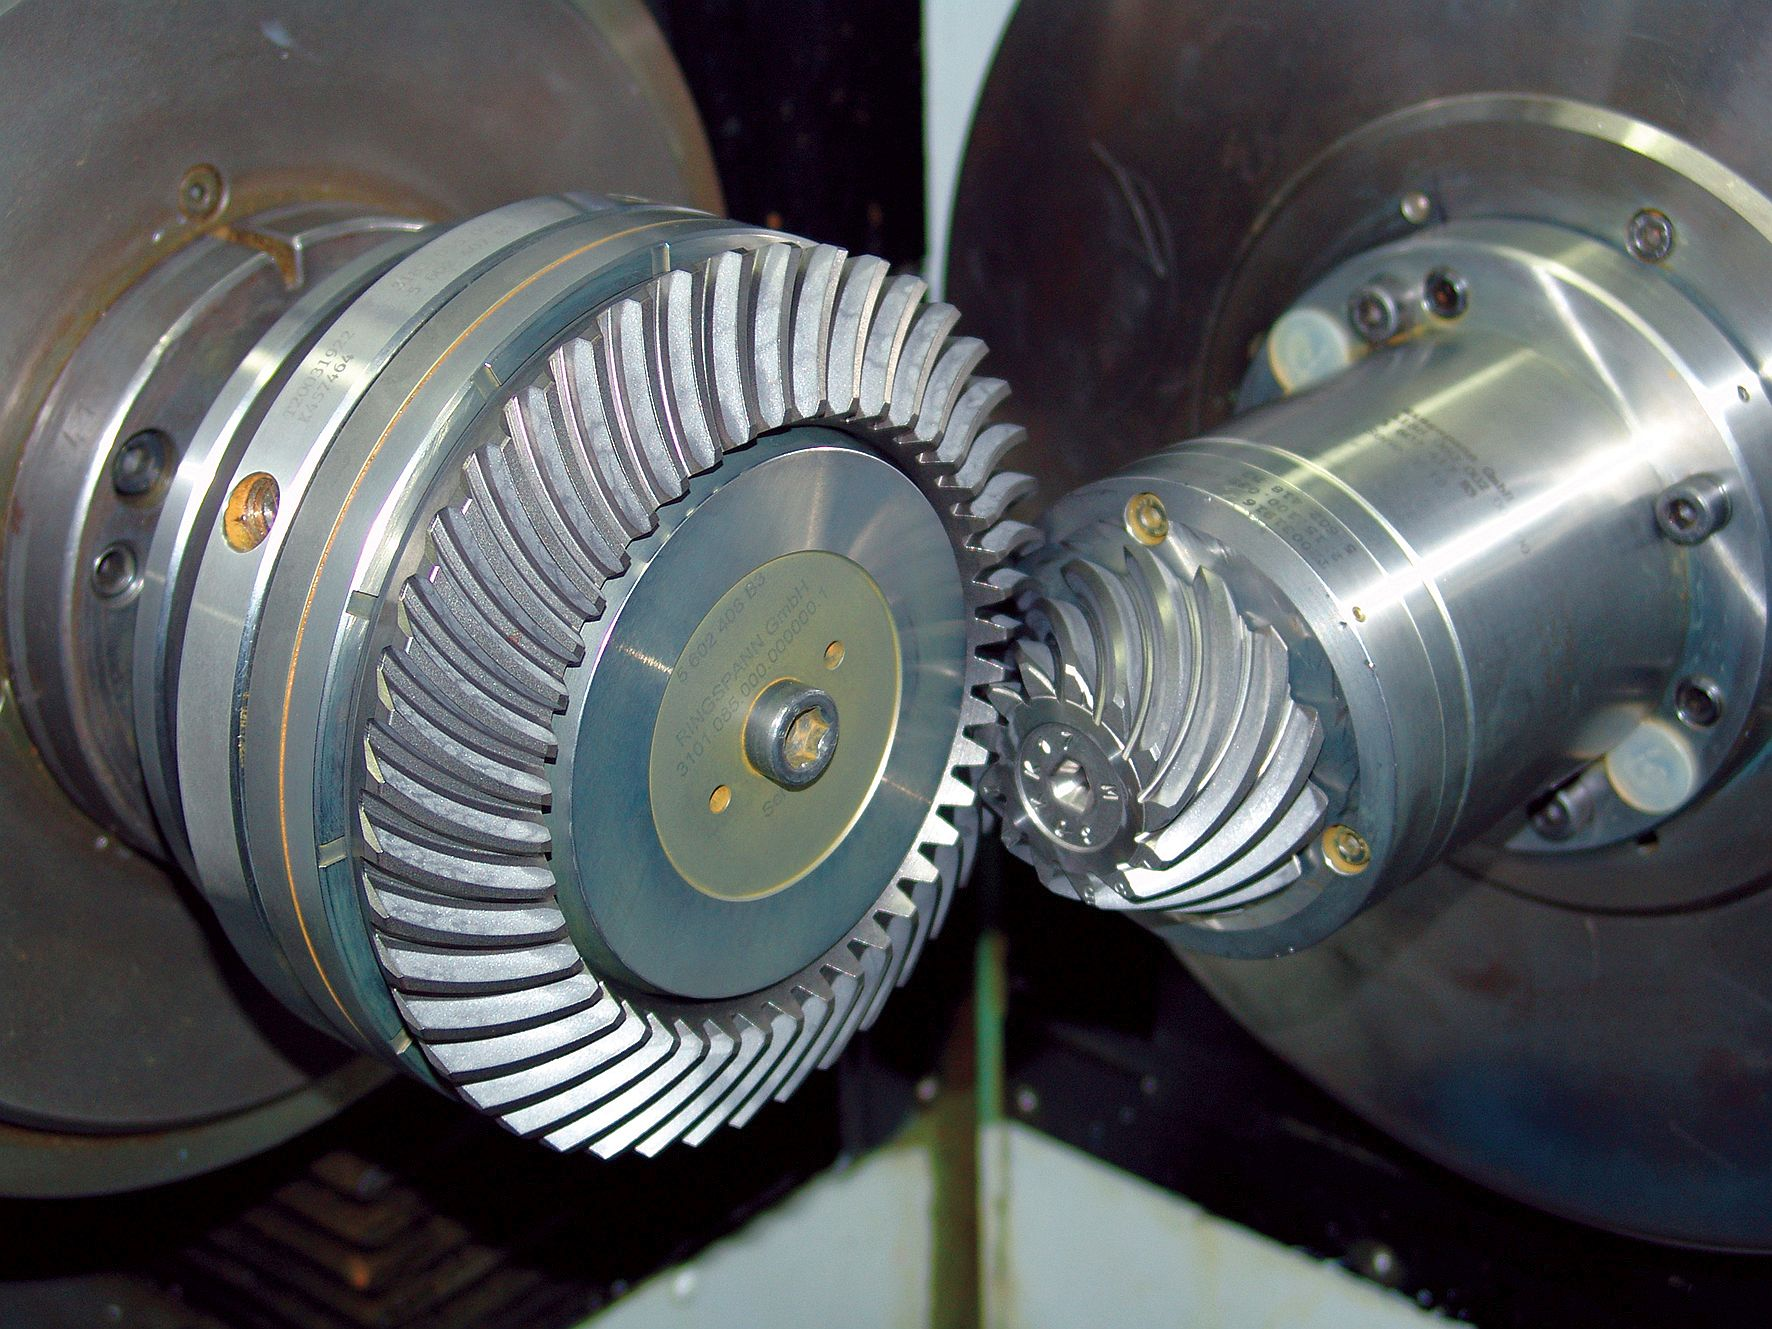 RINGSPANN clamping chucks and clamping mandrels are widely used in gearing technology